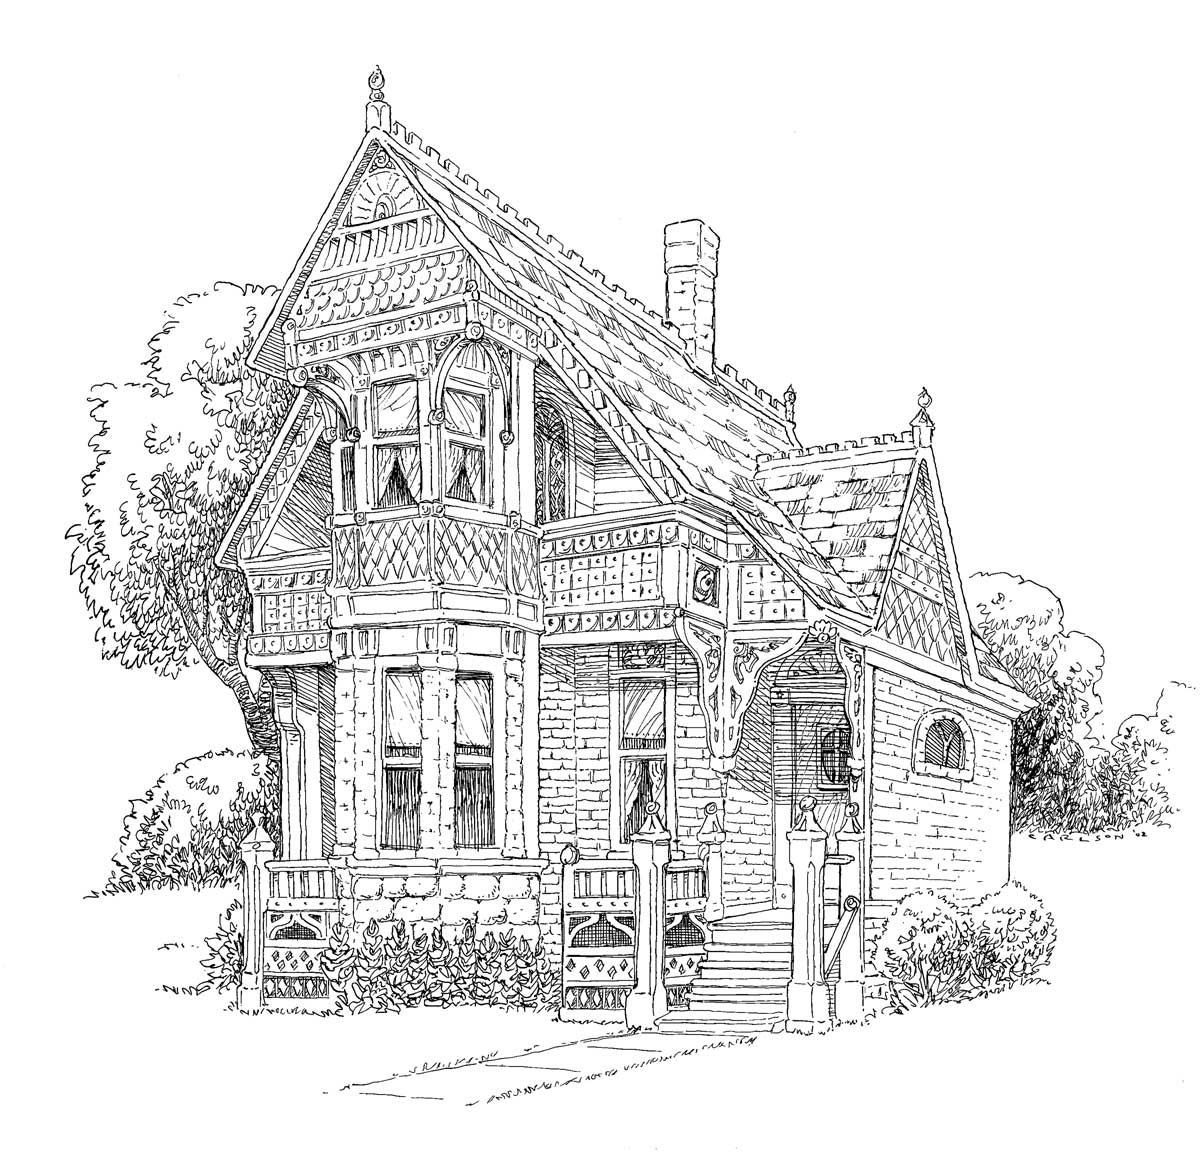 Icolor architecture william a lang 1200x1159 coloring book pages house colouring